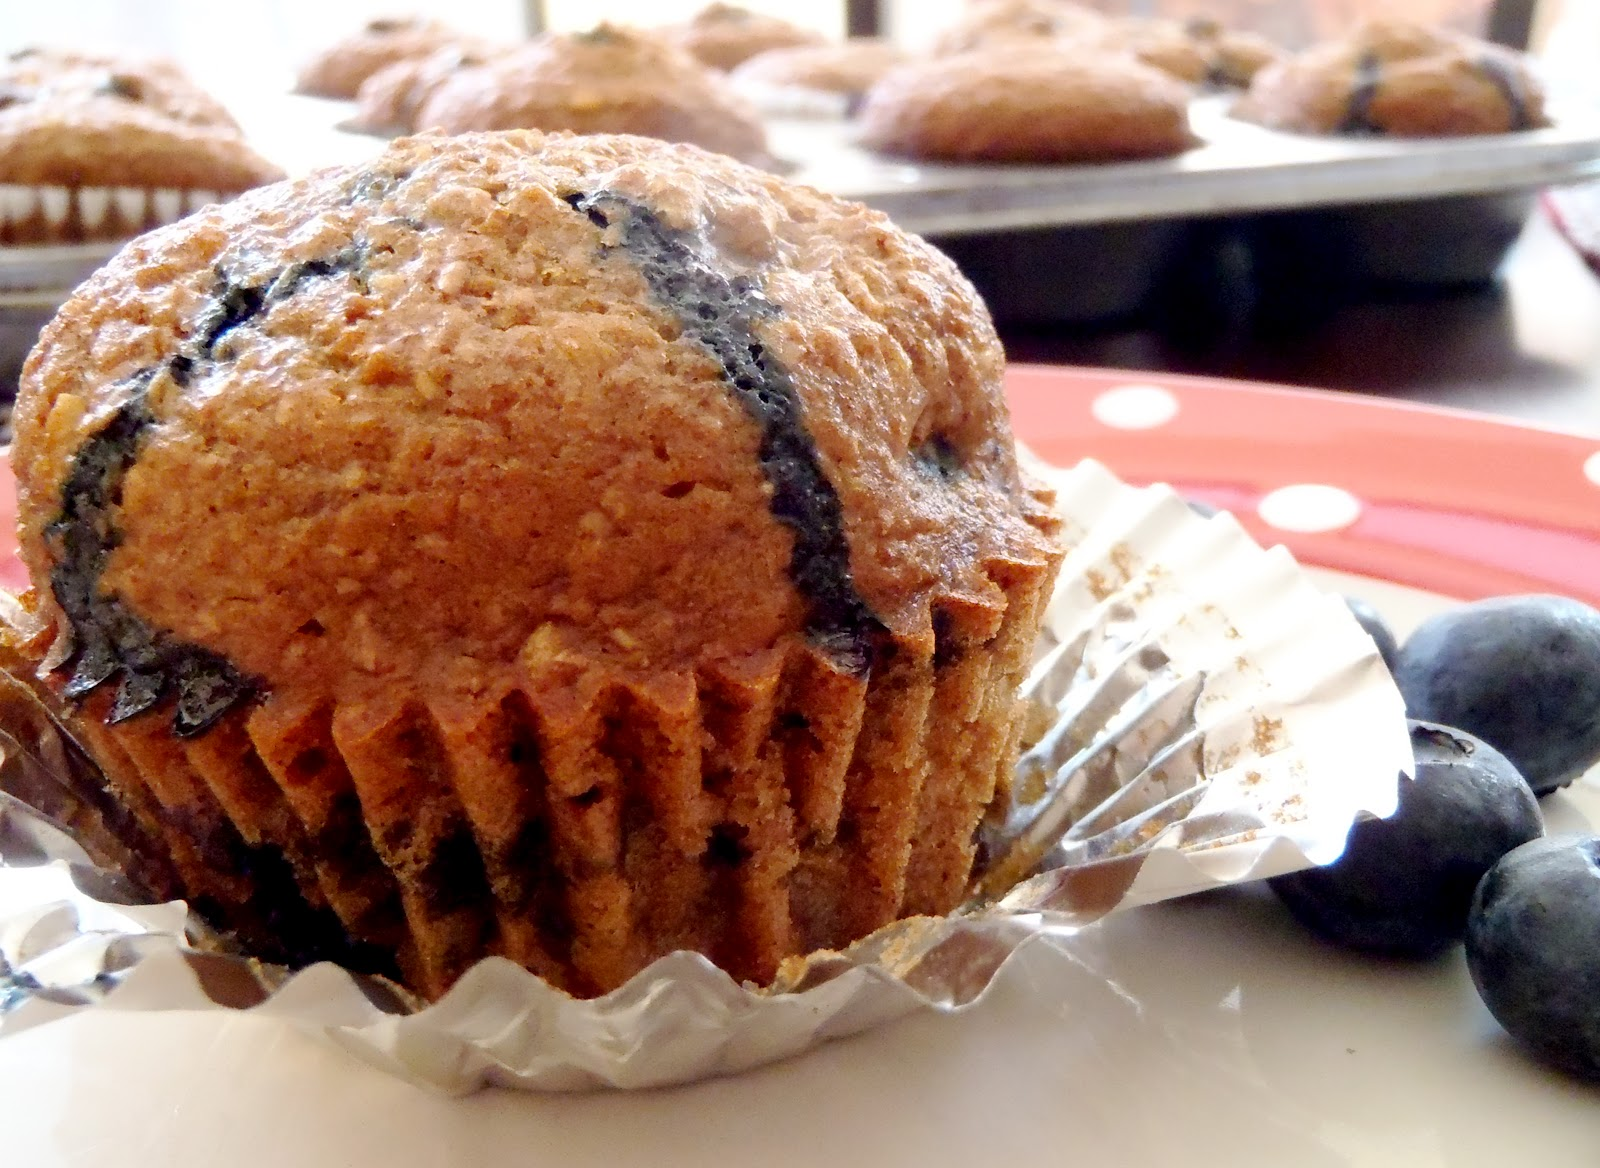 Macke Monologues: Honey Coconut Blueberry Bran Muffins